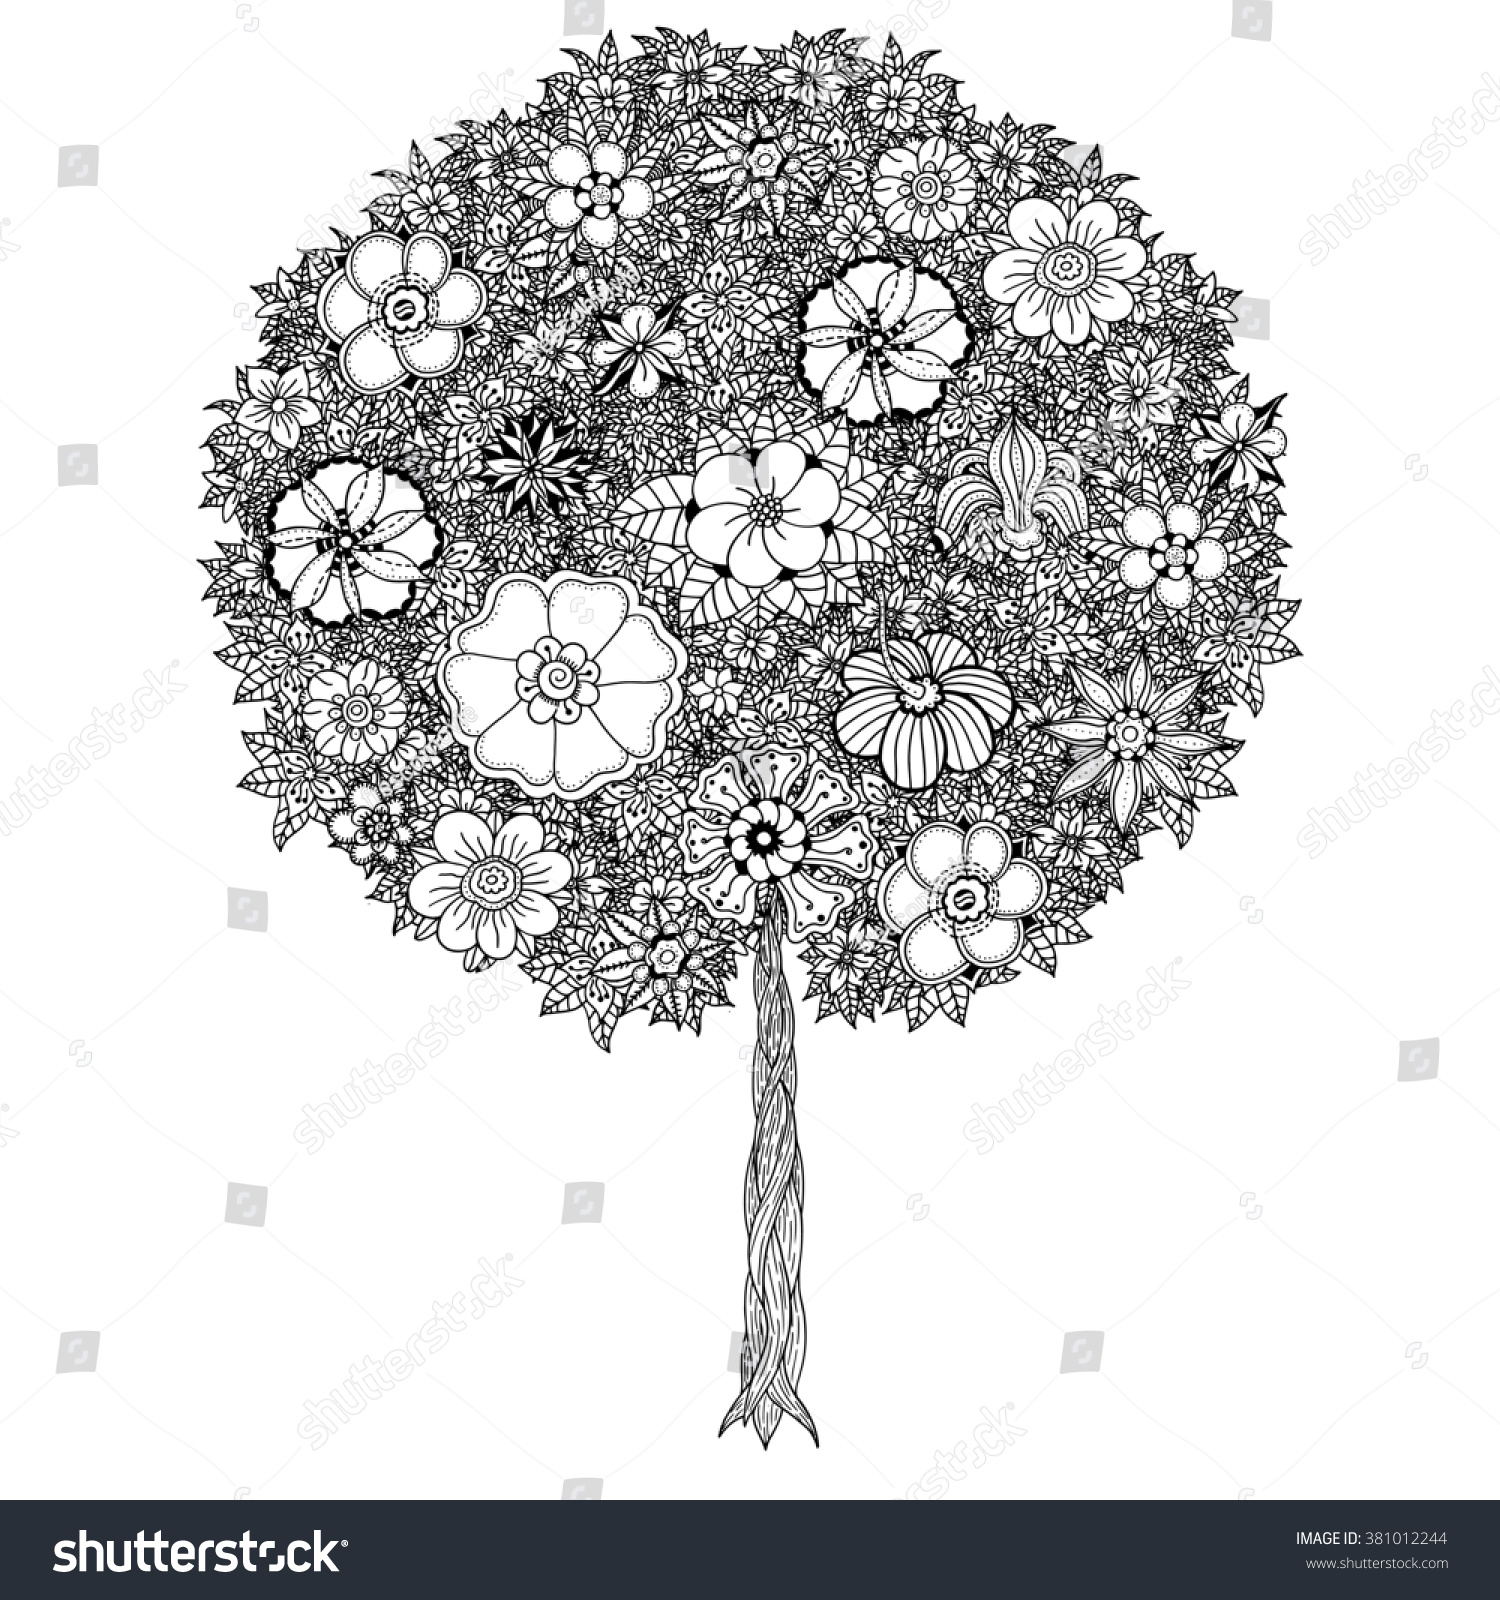 Tree With Leaves And Flowers Art Coloring Book Page For Adults Hand Drawn